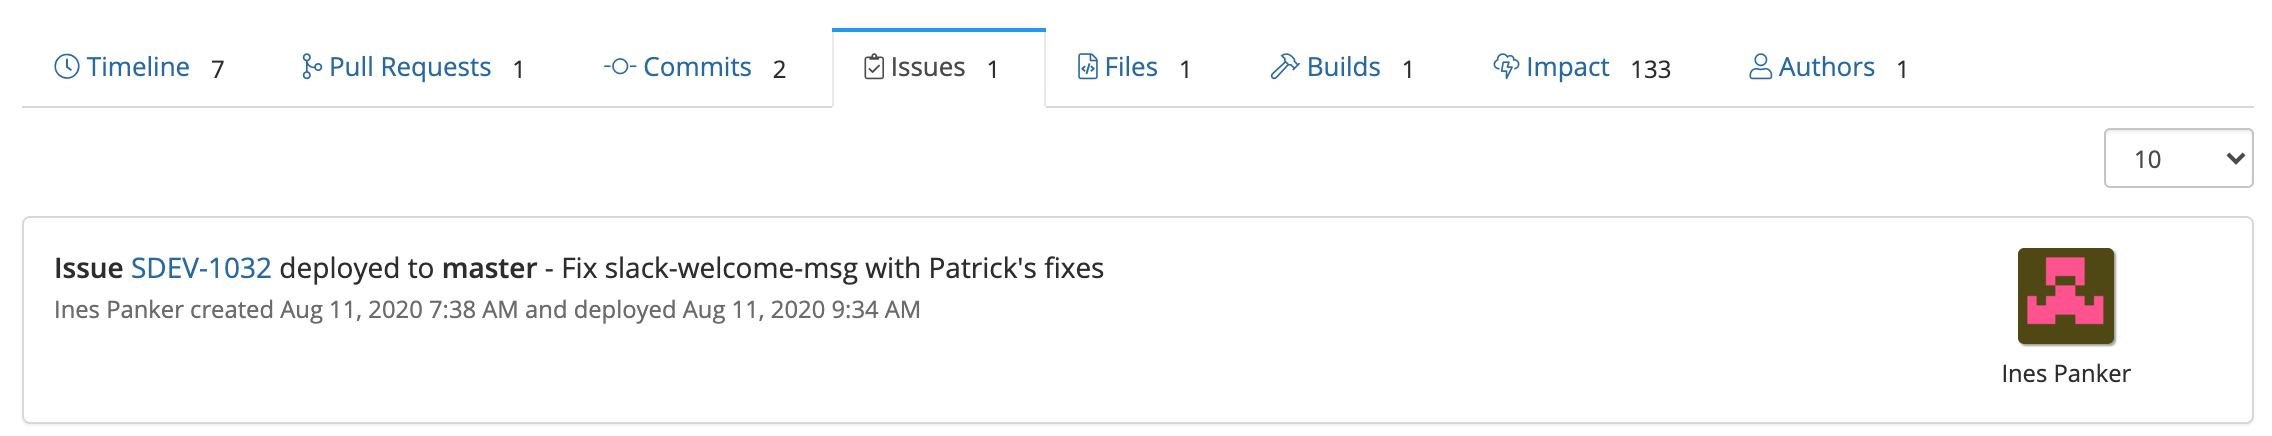 Connect your Jira issues to your deployments